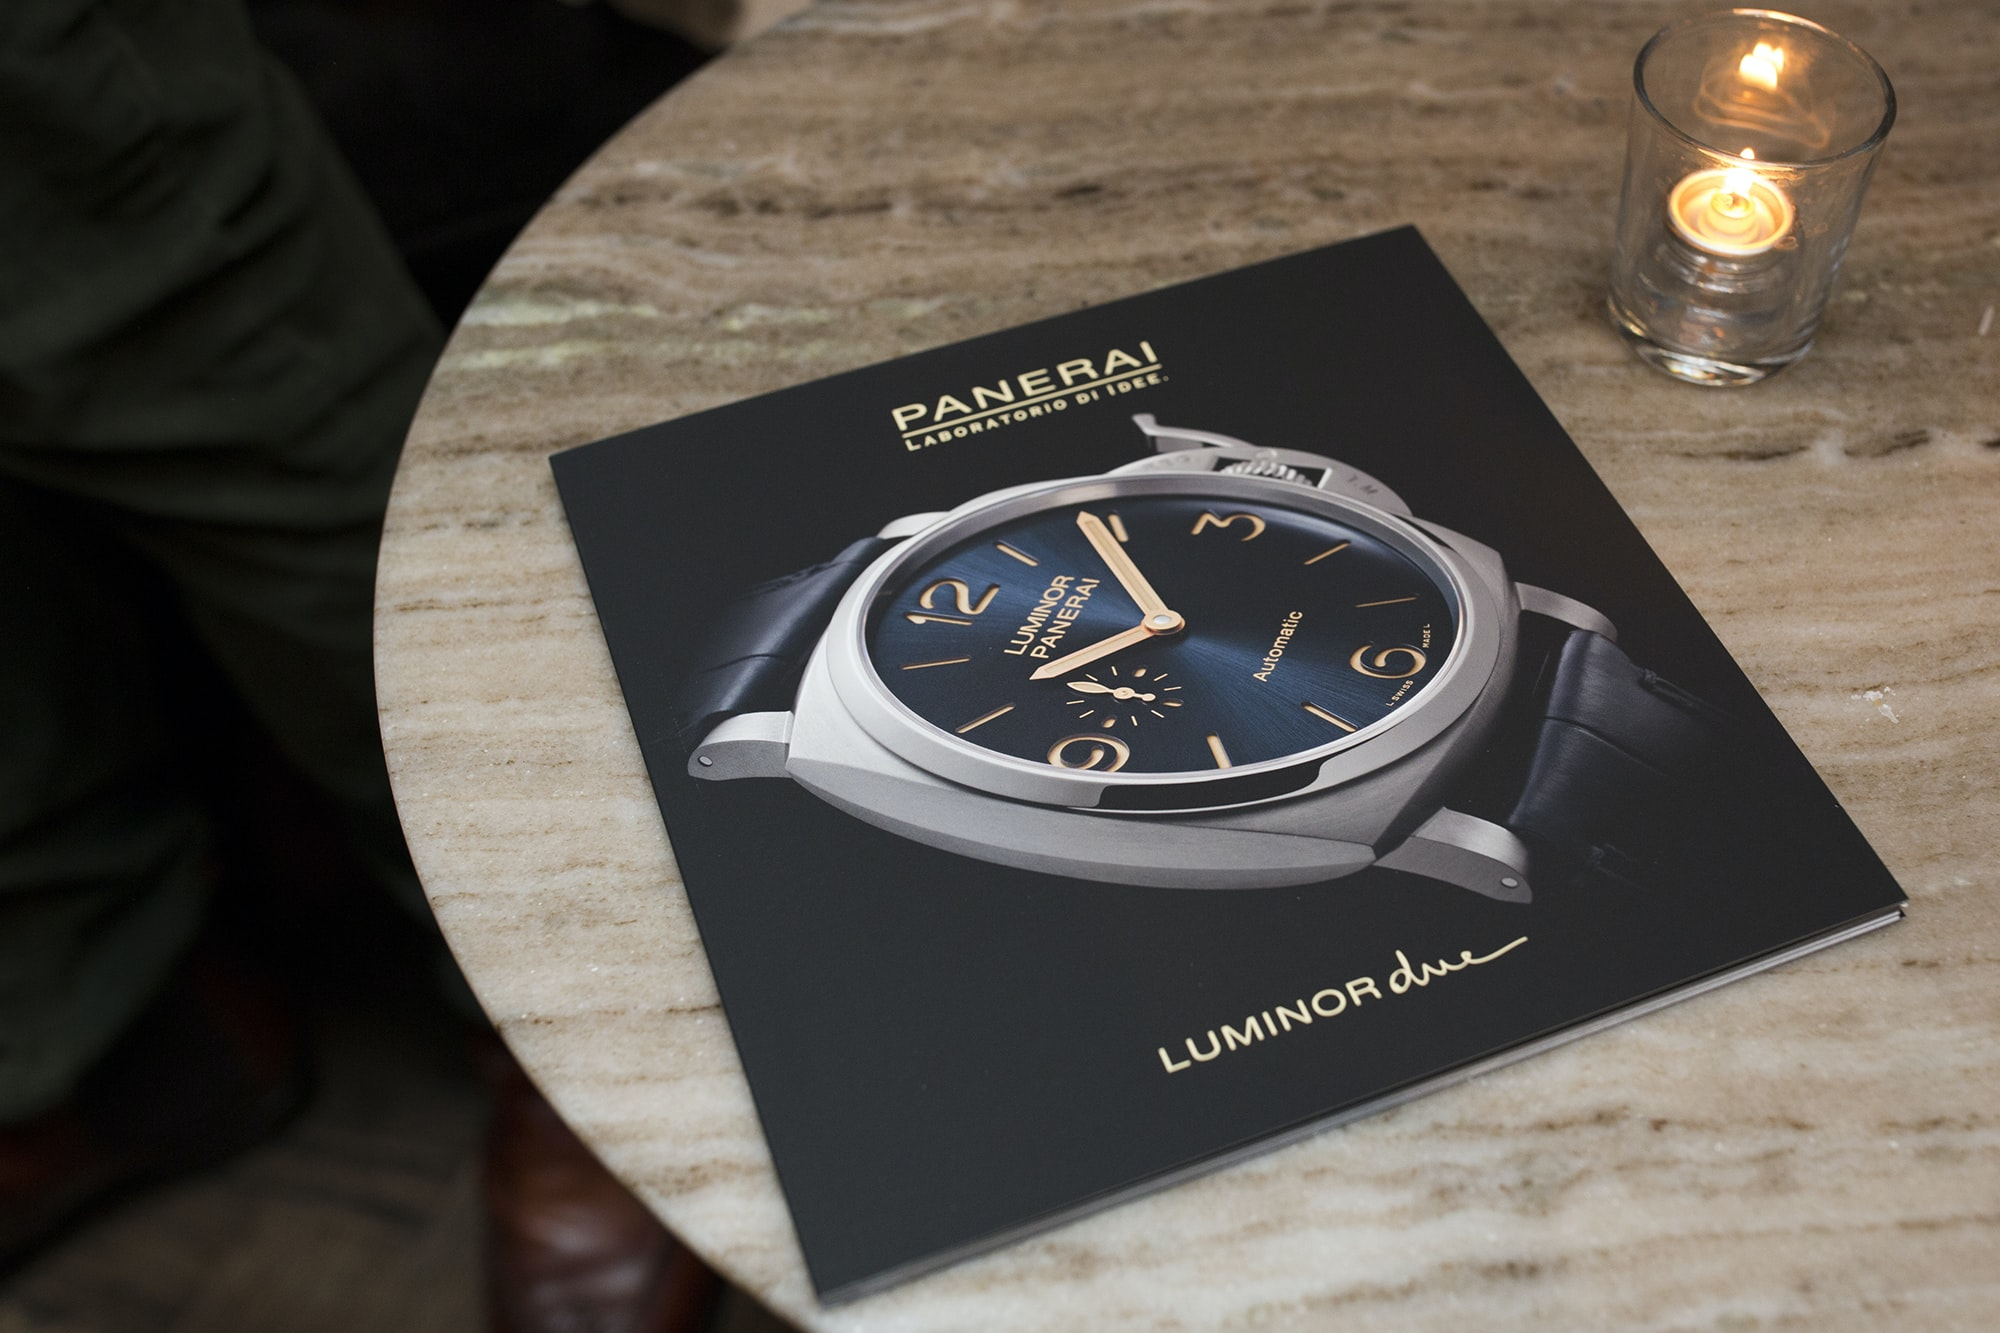 Photo Report: Celebrating The Panerai Luminor Due Collection In New York Photo Report: Celebrating The Panerai Luminor Due Collection In New York  B89A7403